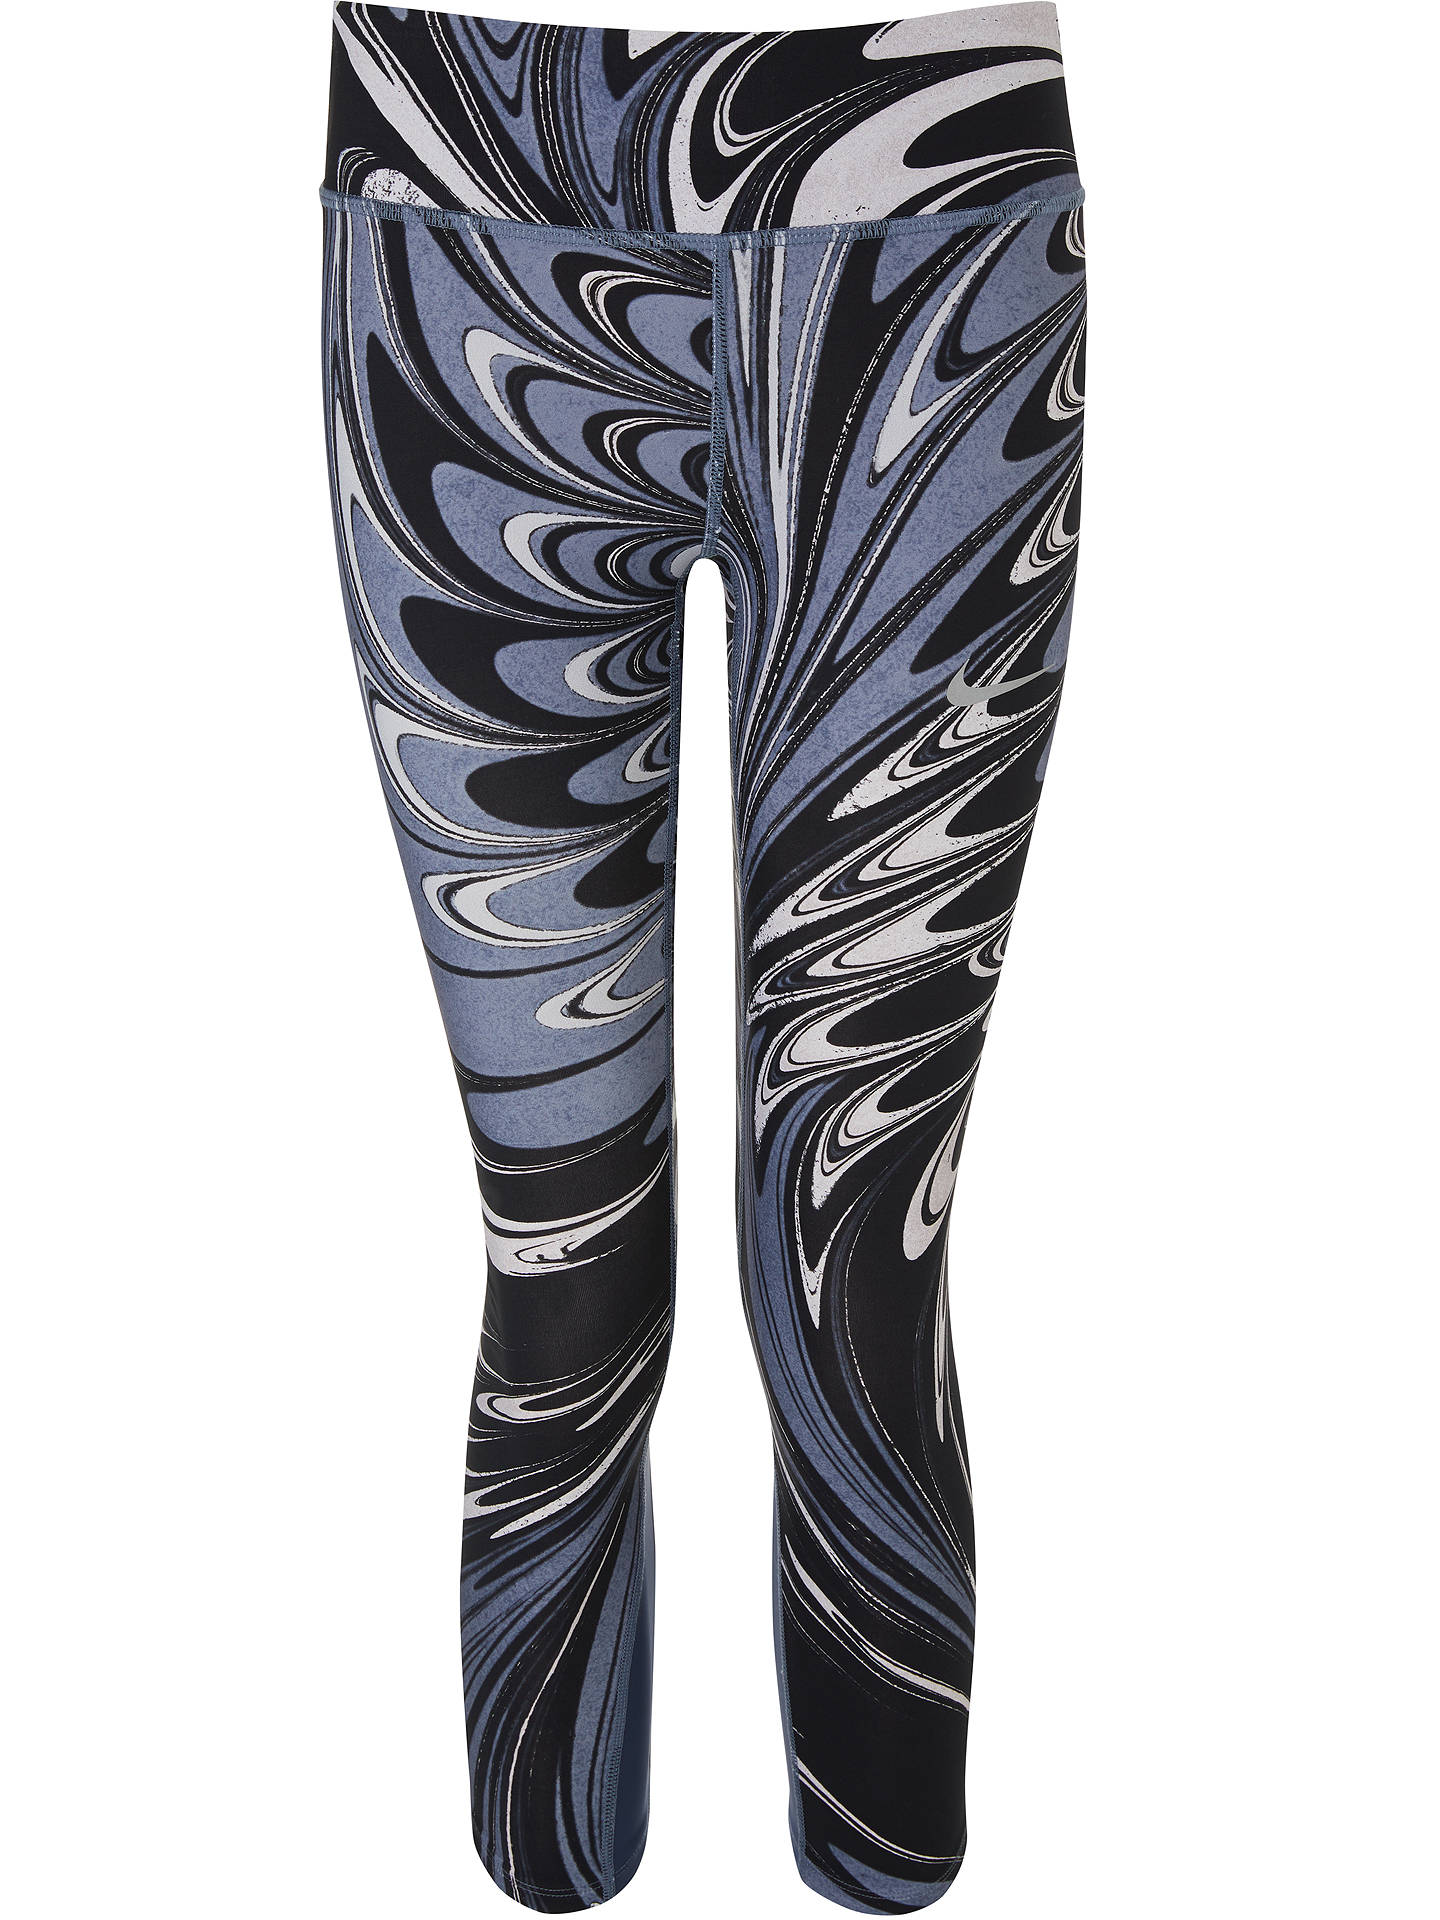 BuyNike Power Epic Lux Printed Cropped Running Tights, Thunder Blue/Black, XS Online at johnlewis.com